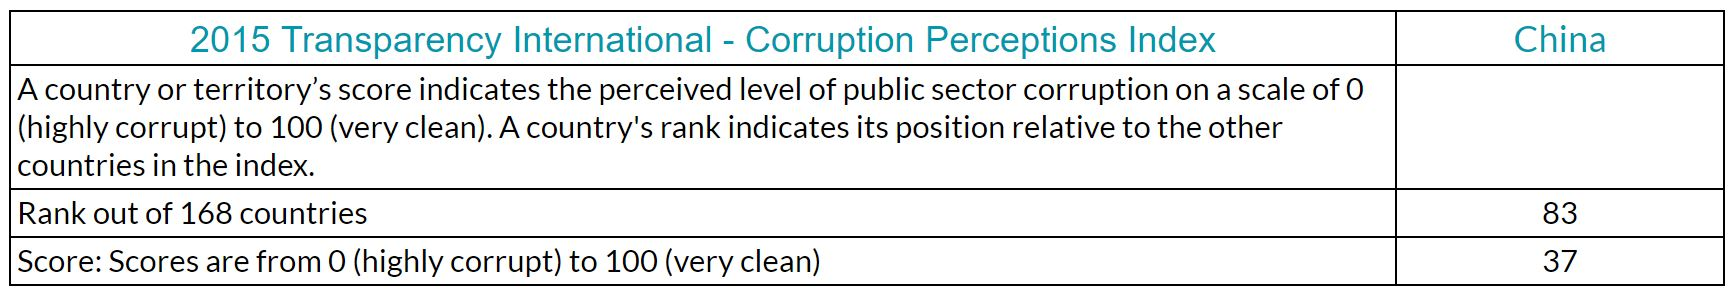 Transparency International Corruption Perceptions Index results for China